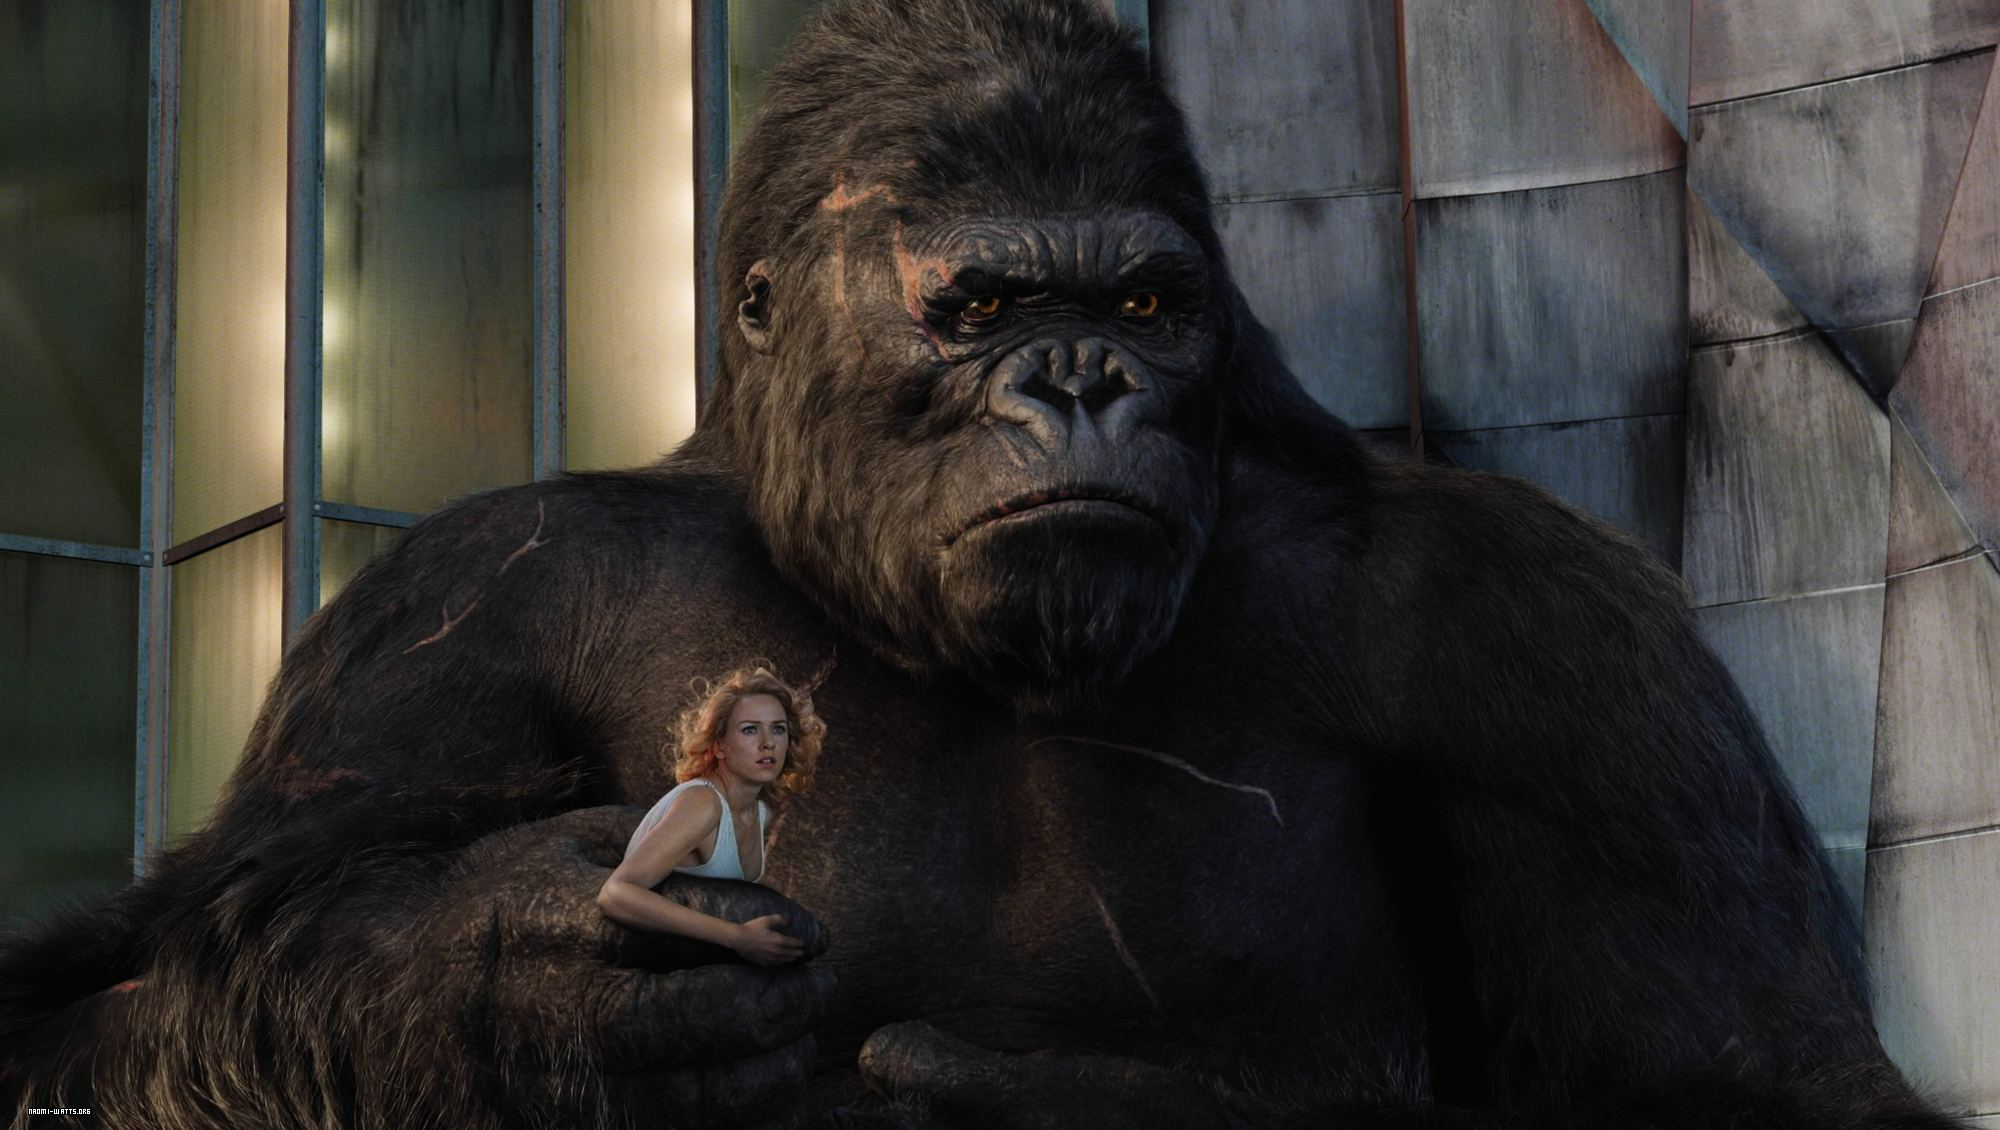 King kong 2005 full hd fondo de pantalla and fondo de - King kong 2005 hd wallpapers ...